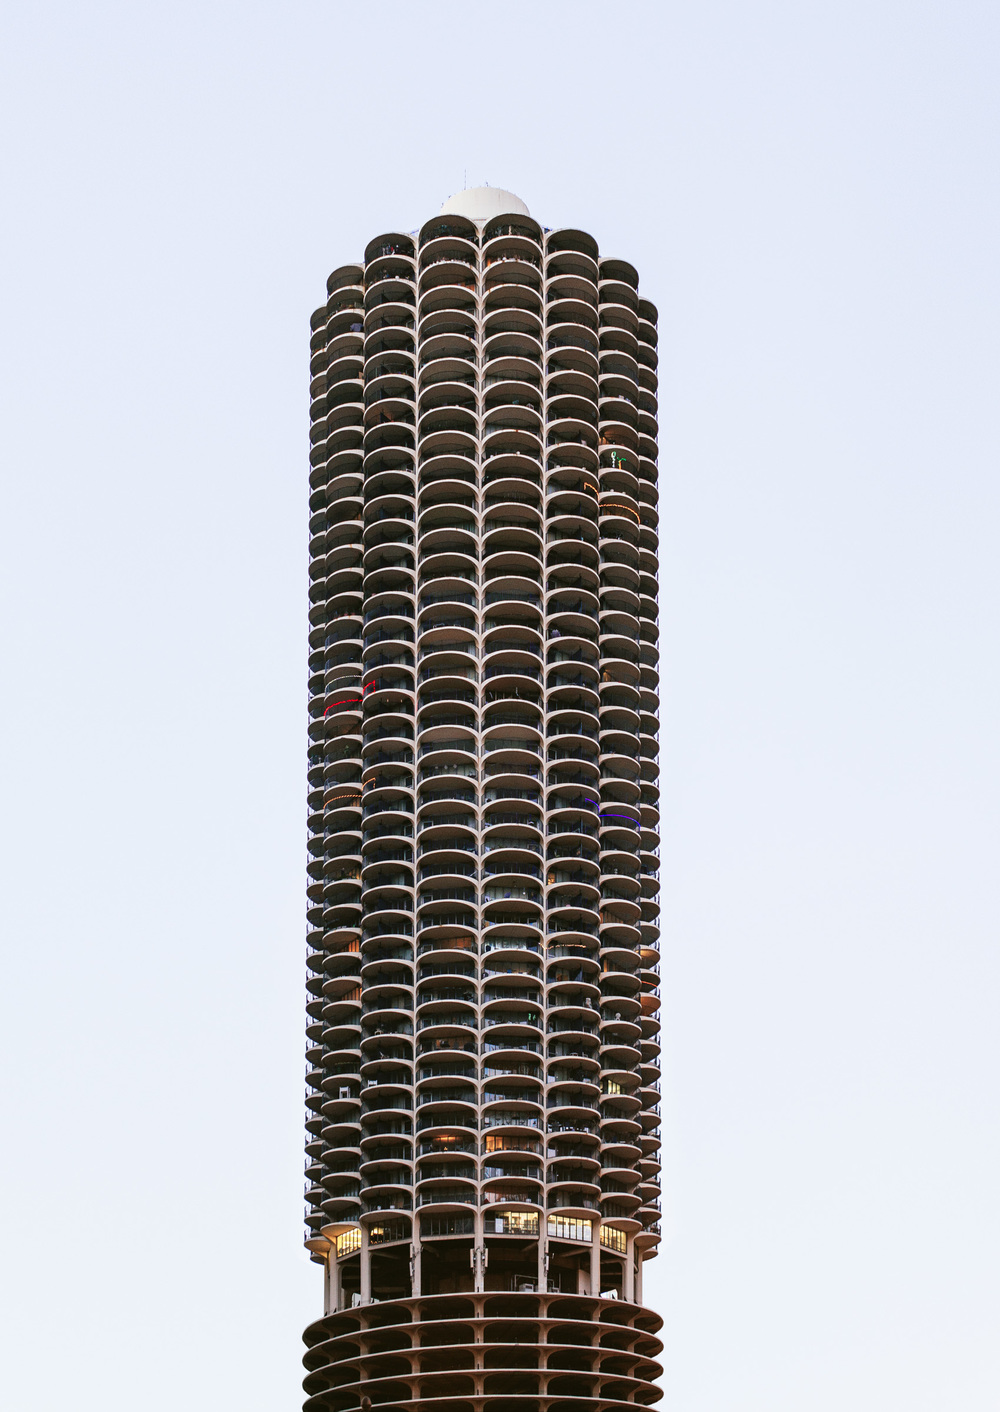 Marina City, famous two corncob-shaped twin buildings.